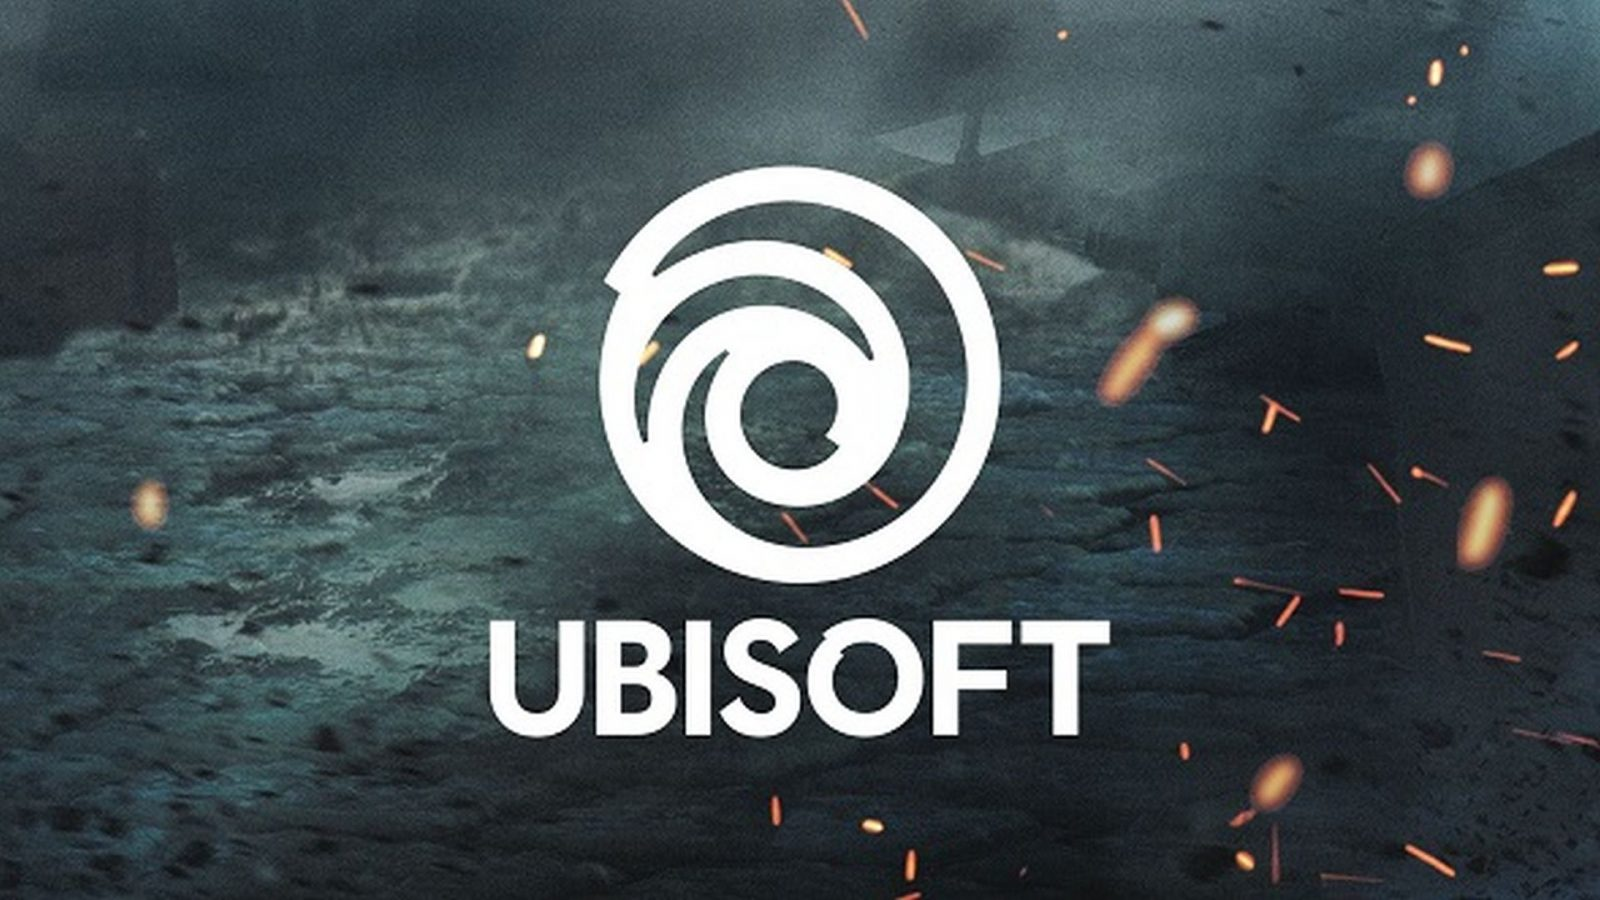 Three years in, an unannounced Ubisoft project is cancelled